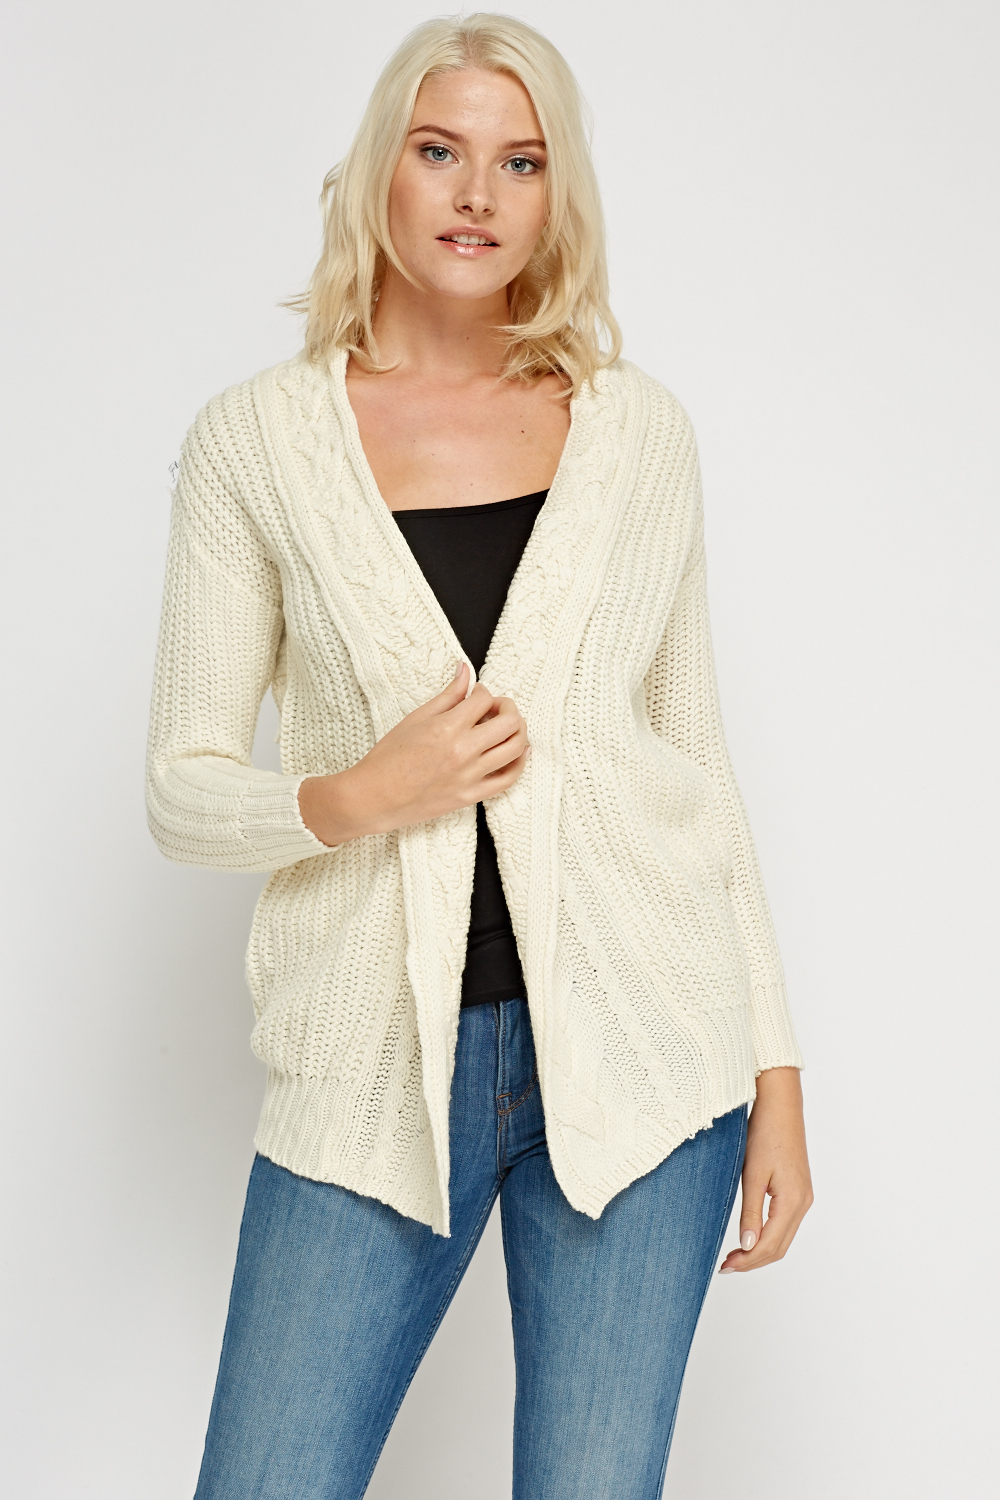 Cable Knit Trim Off White Cardigan - Just £5